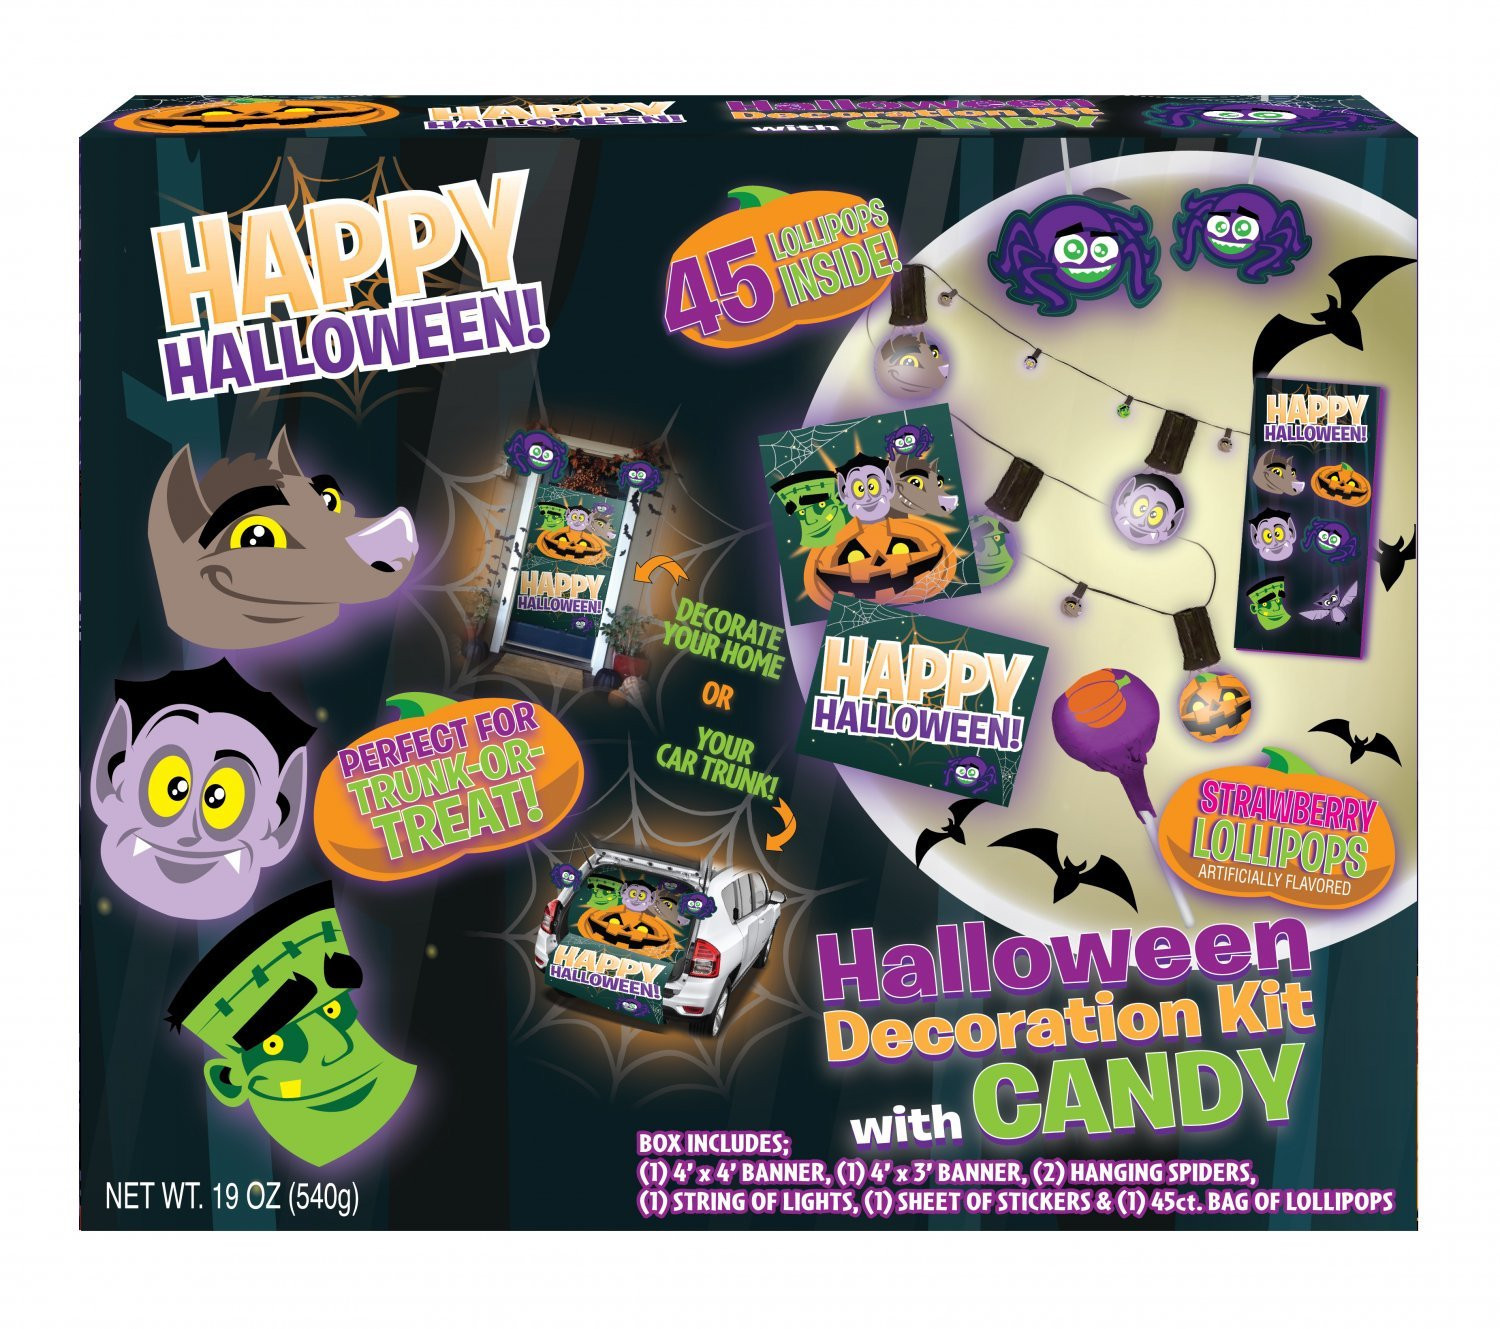 CandyRific  Trunk or Treat Decoration Kit